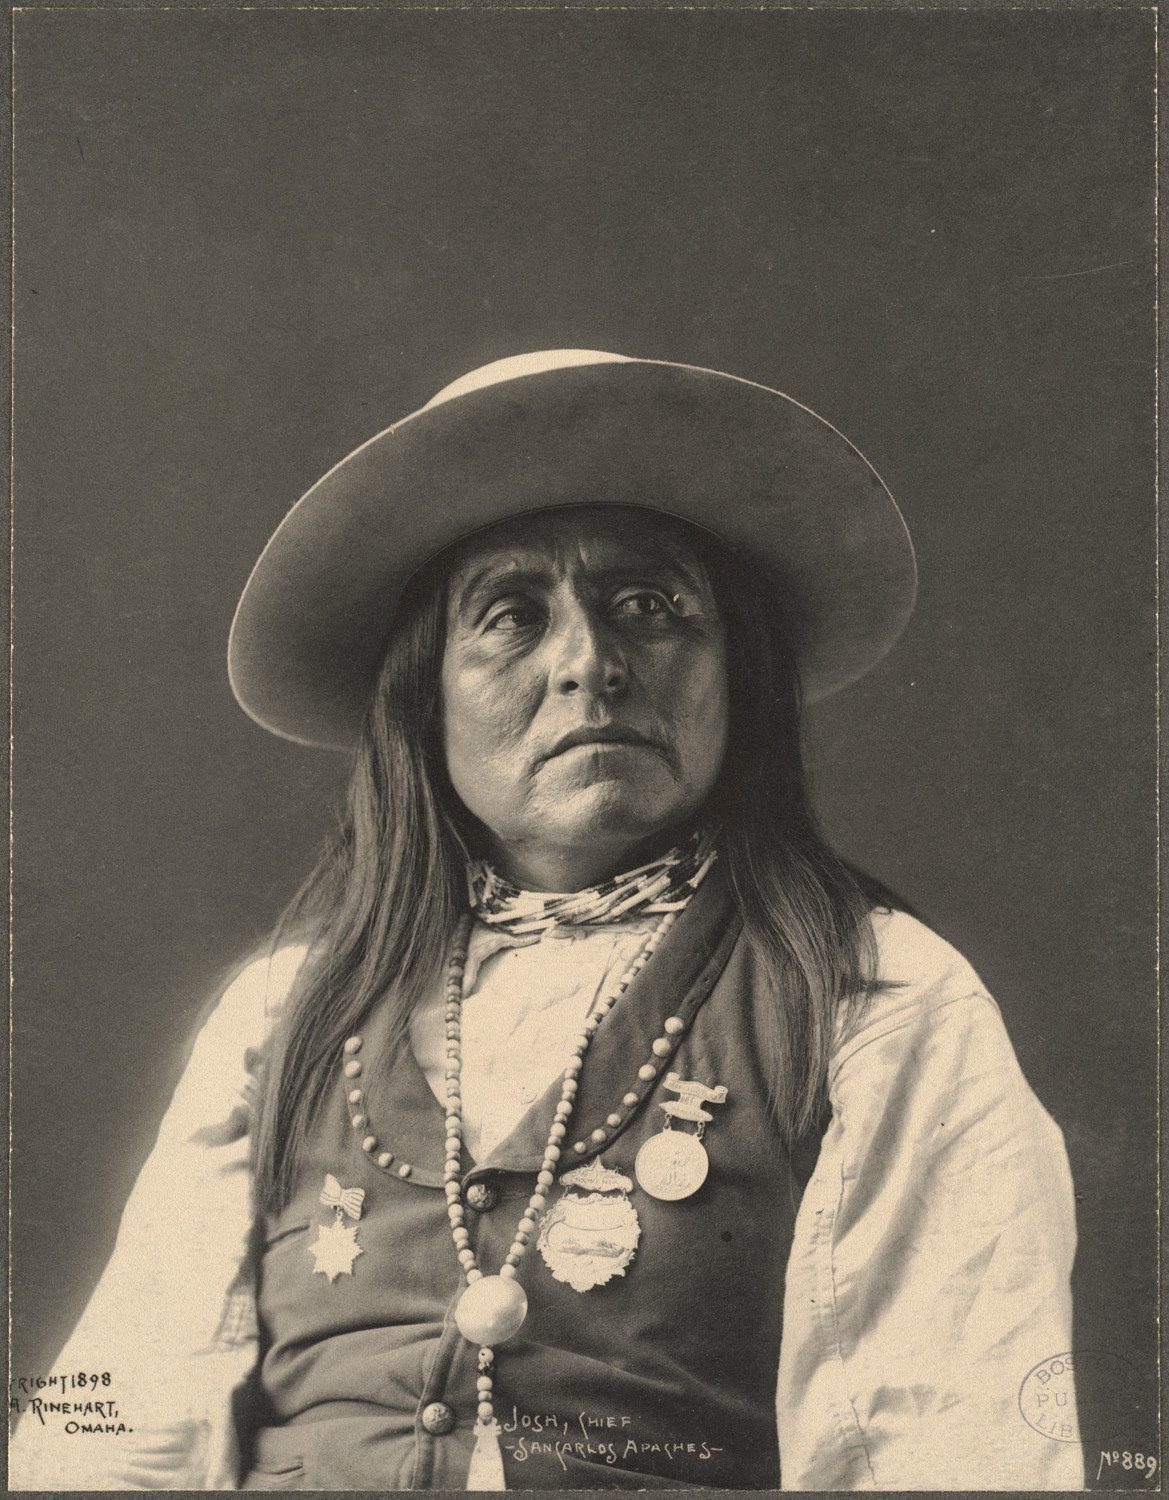 Josh, Chief, San Carlos Apaches, 1899. (Photo by Frank A. Rinehart).